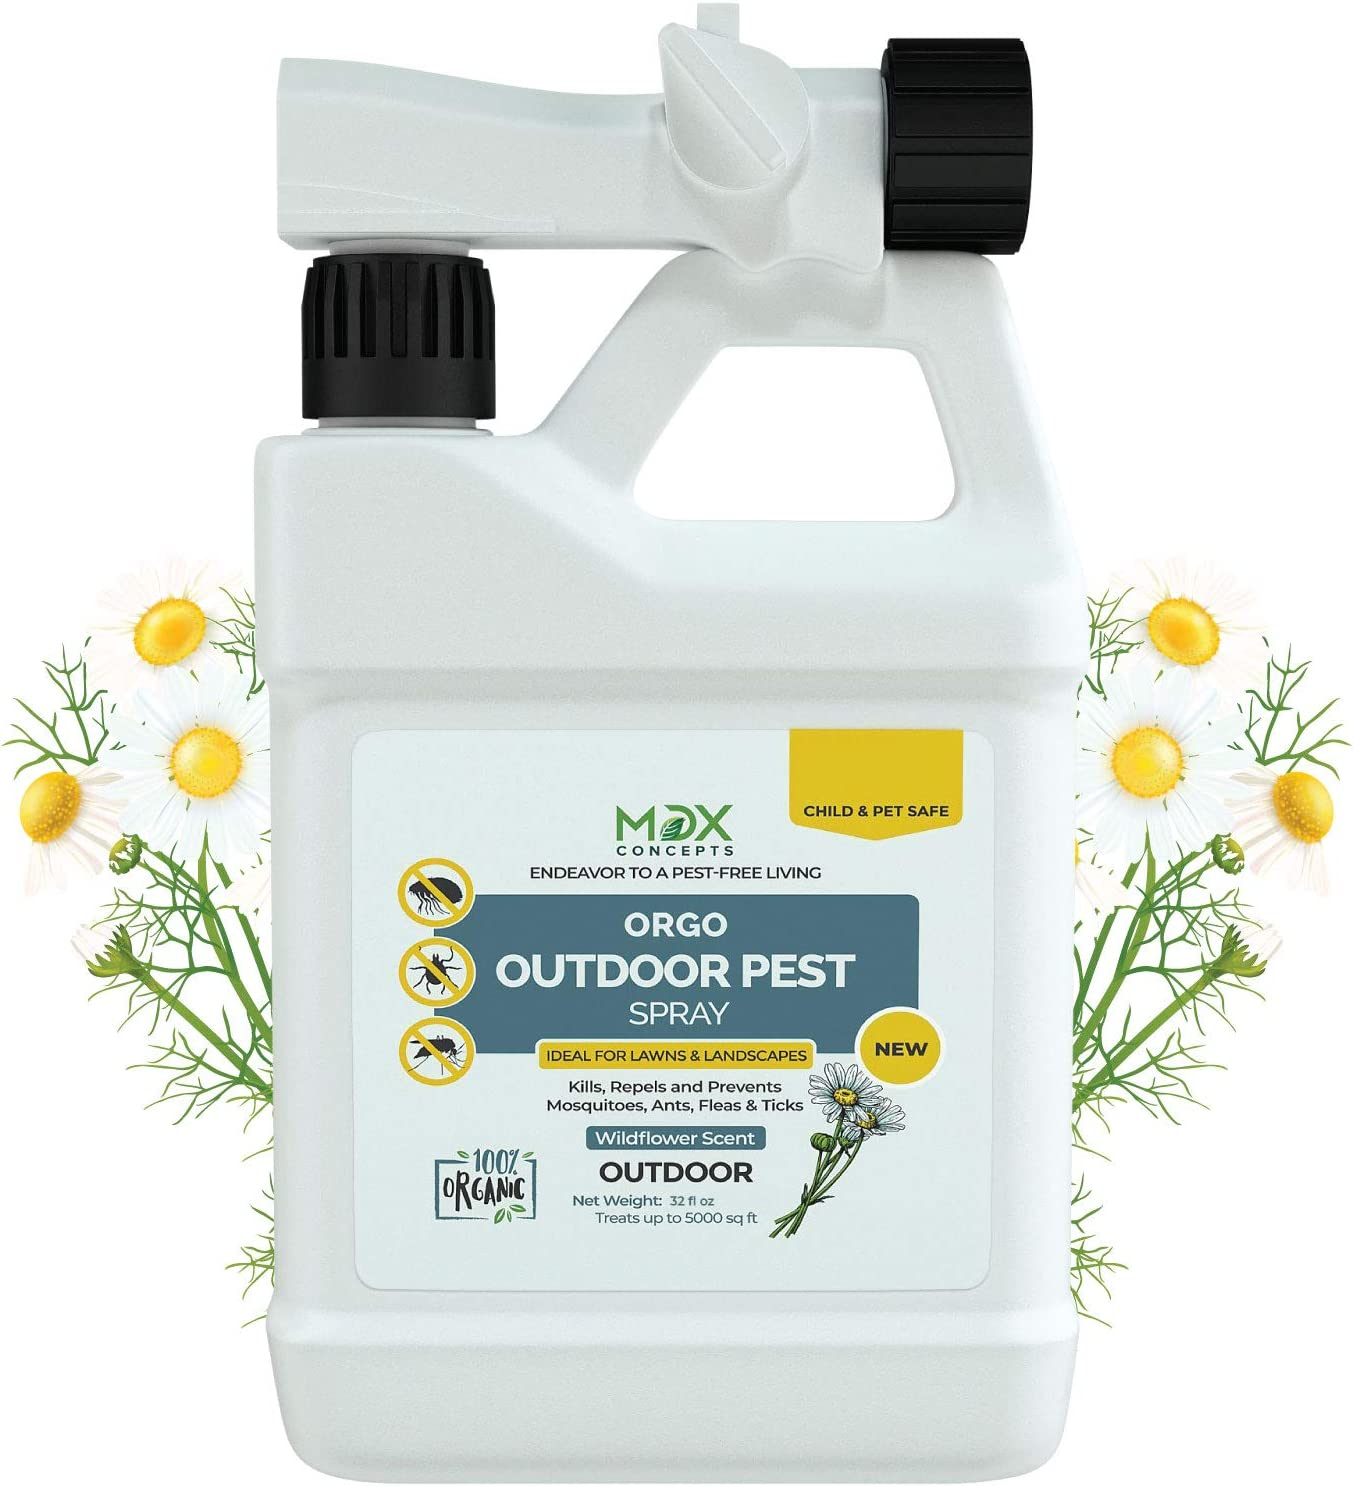 mdxconcepts Organic Ready to Use Yard Flea, Tick and Mosquito Spray – Made in USA - Mosquito and Insect Killer, Treatment, and Repellent – Safe for Pets, Plants, Kids - 32 oz